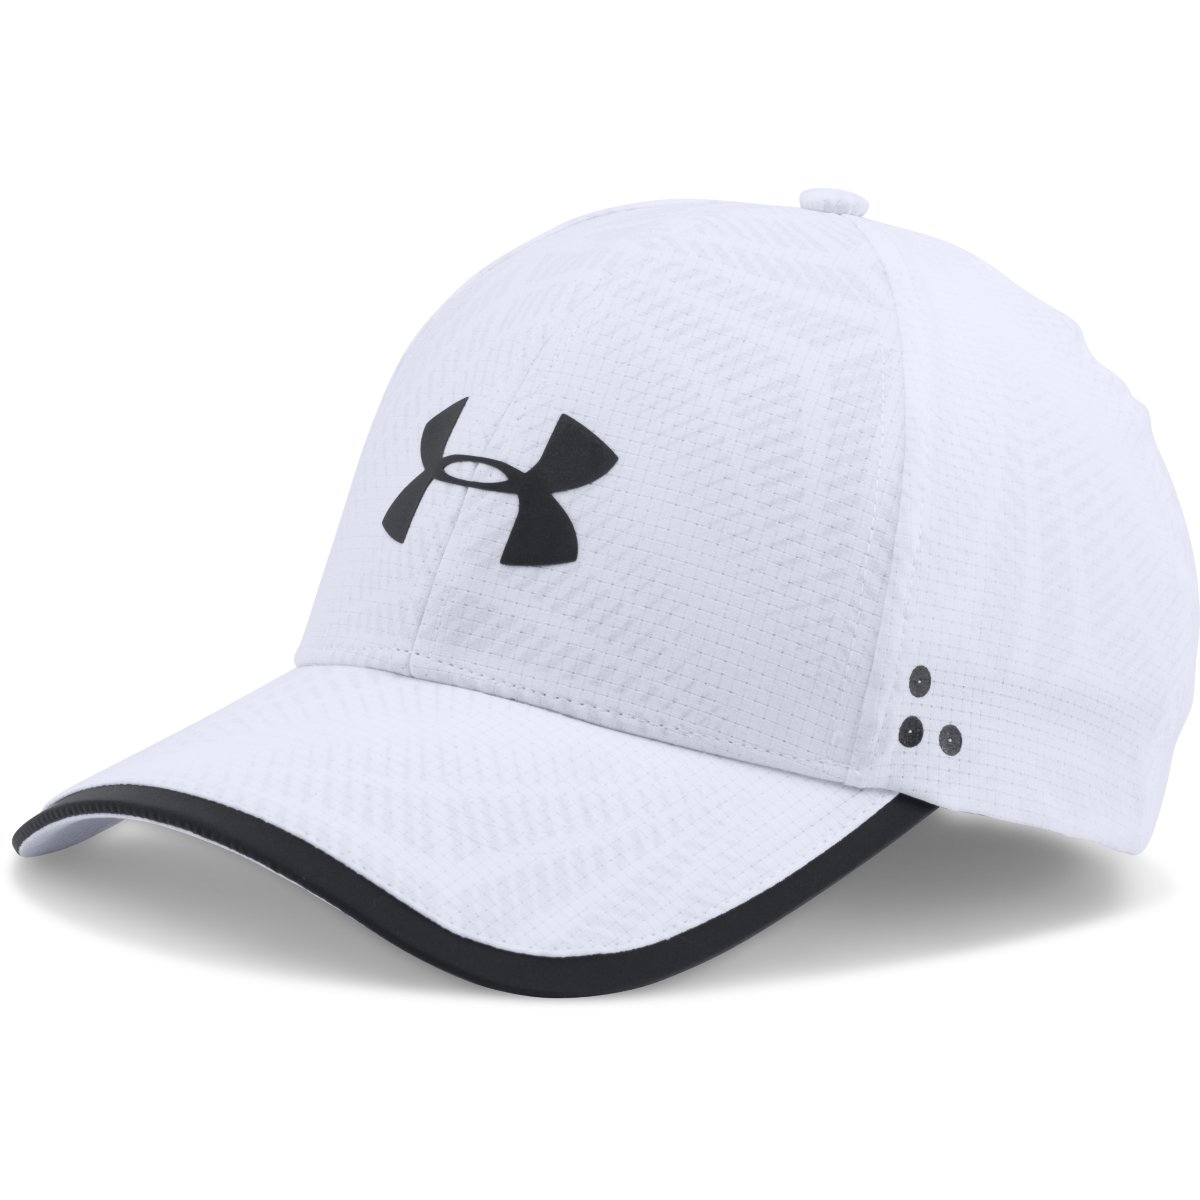 f2f760a85 Cheap under armour baseball hat mens Buy Online >OFF48% Discounted